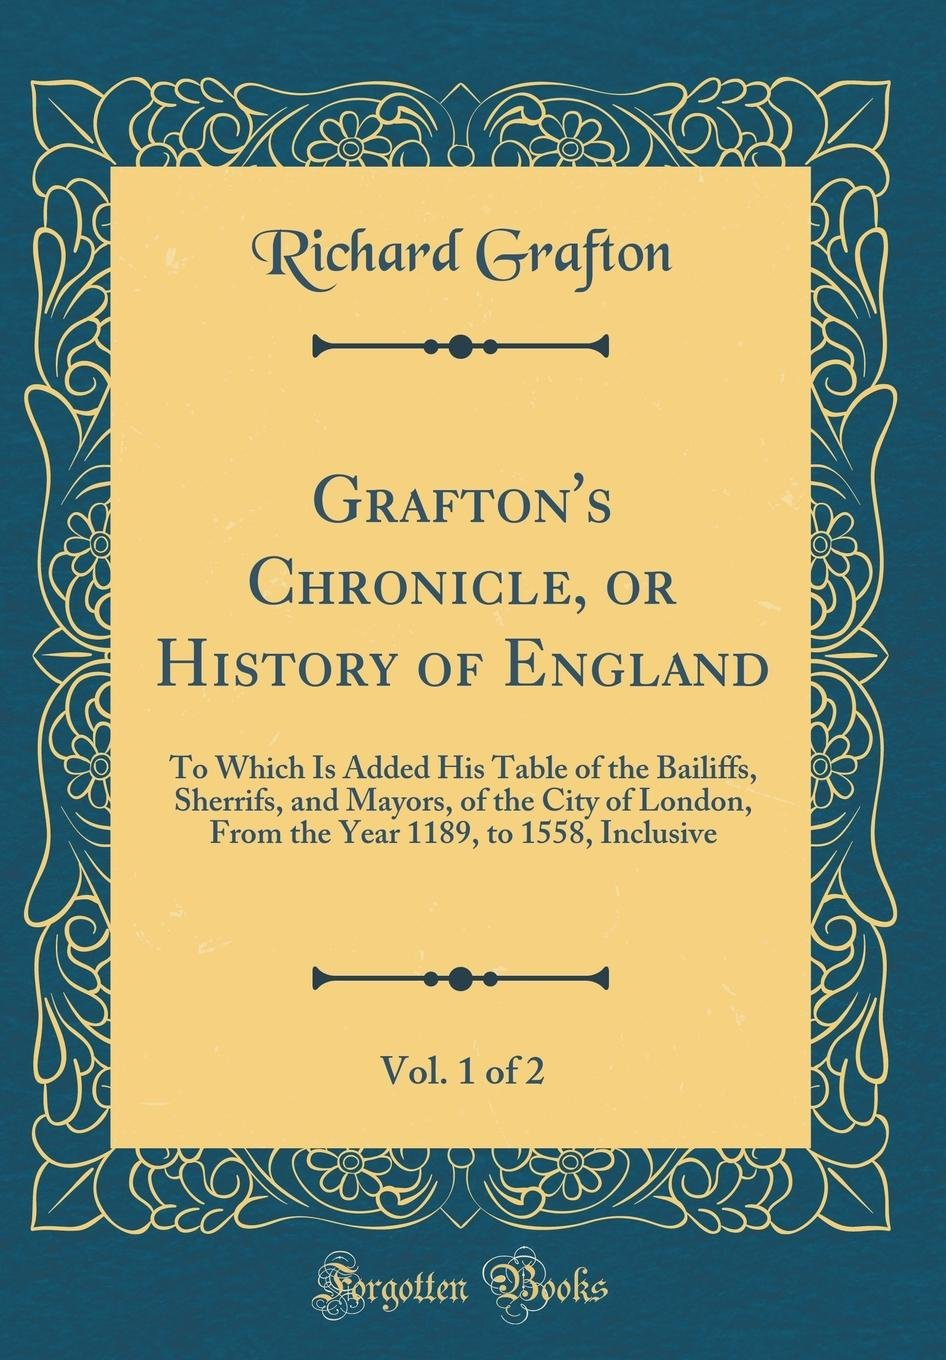 Grafton's Chronicle, or History of England, Vol. 1 of 2: To Which Is Added His Table of the Bailiffs, Sherrifs, and Mayors, of the City of London, ... 1189, to 1558, Inclusive (Classic Reprint) ebook